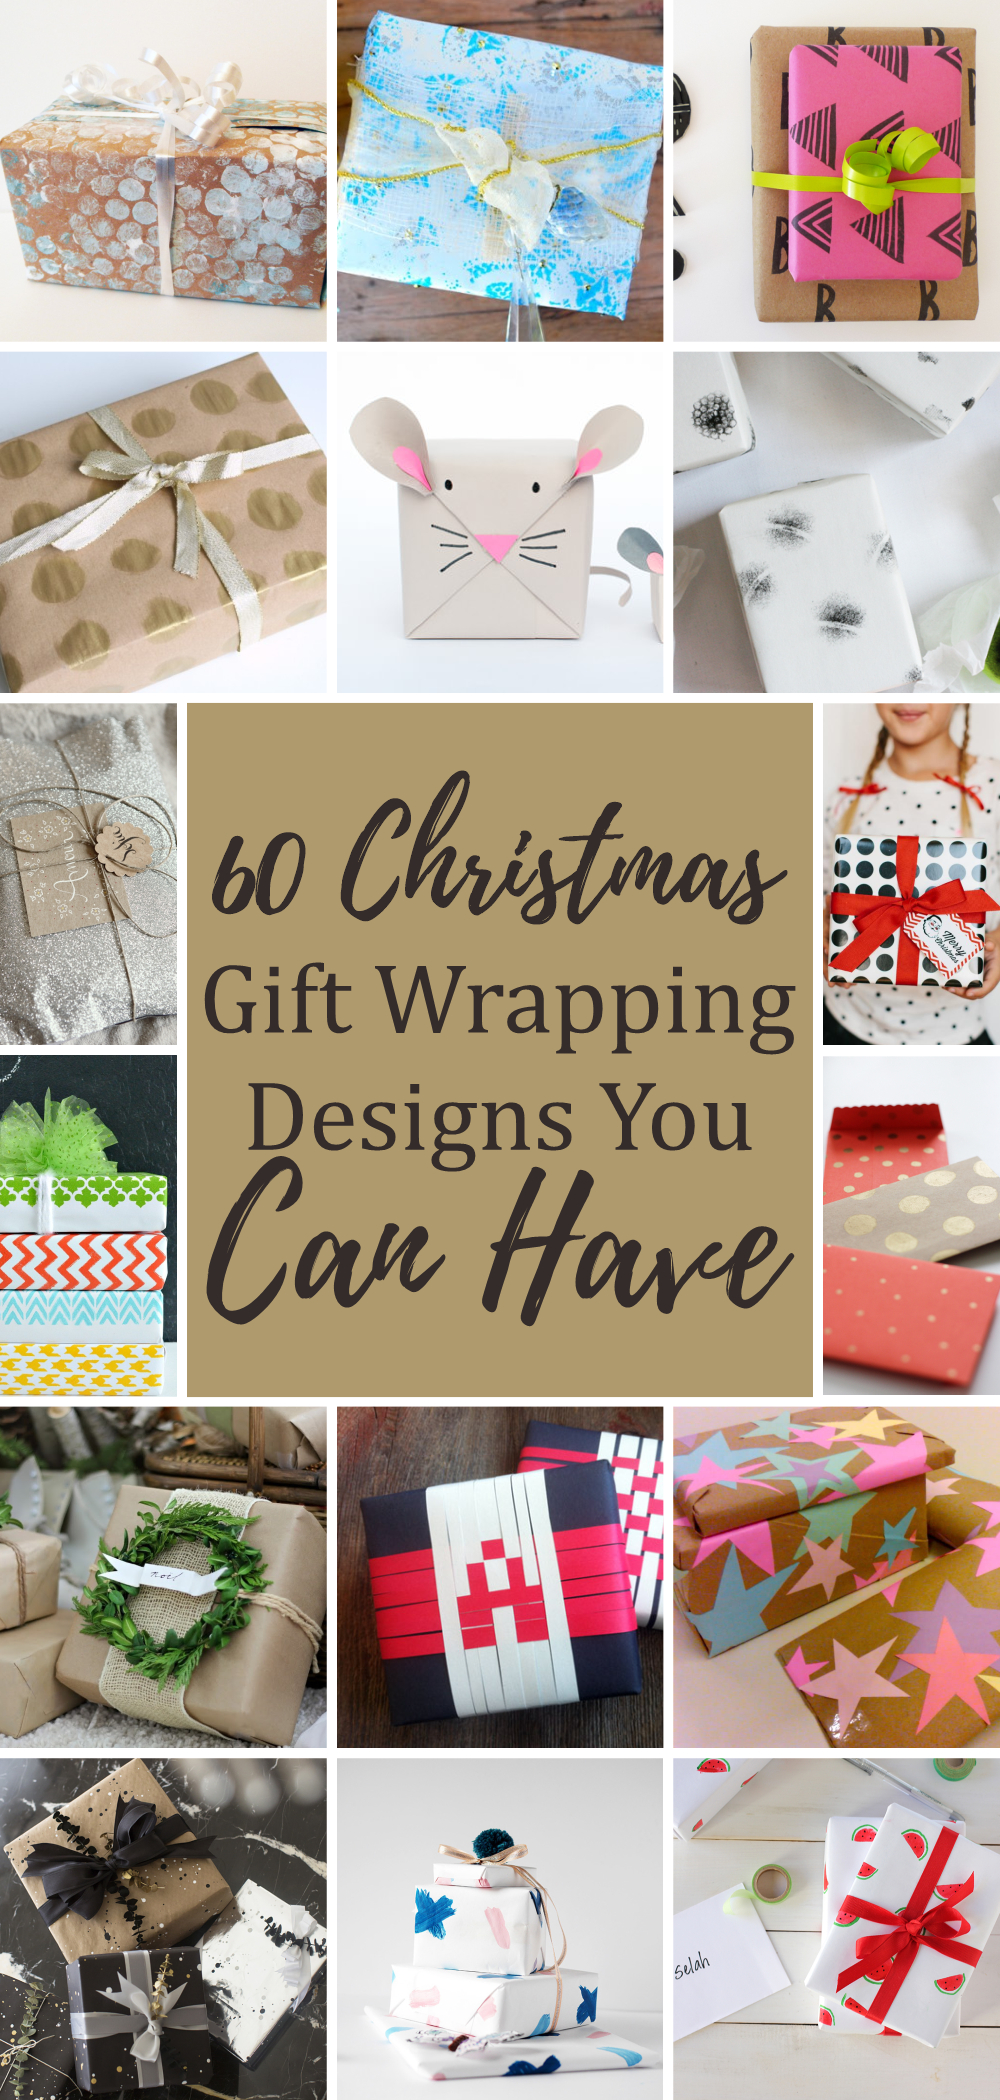 60 christmas gift wrapping designs you can have 1